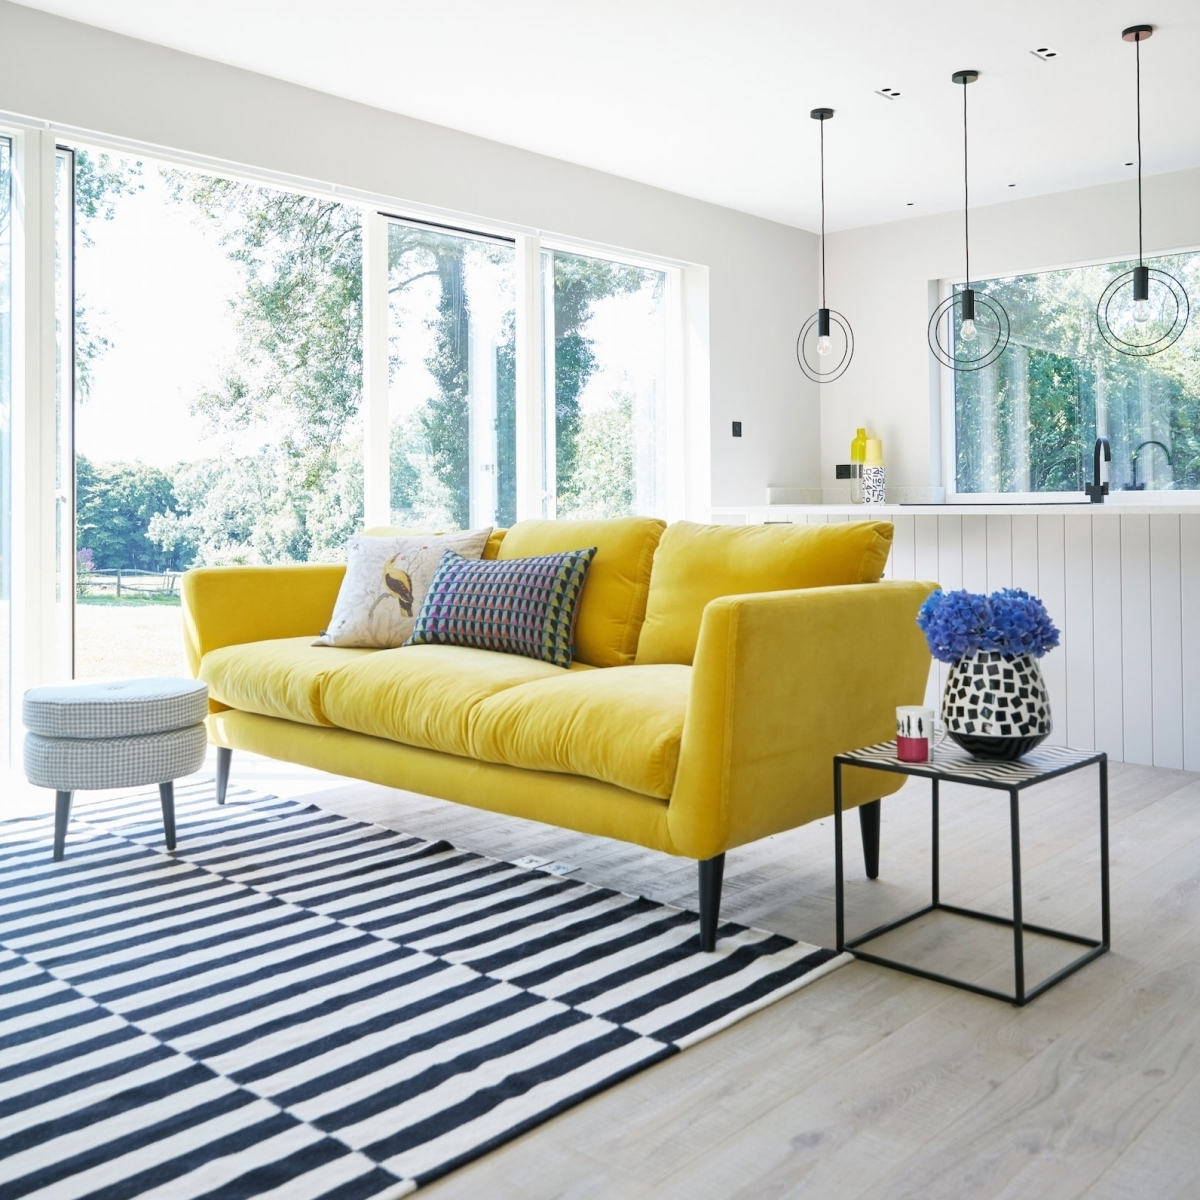 Yellow Sofa Chairs Intended For Well Known Living Room : Yellow Living Room Designs Cheap Chairs With Walls (Gallery 4 of 20)